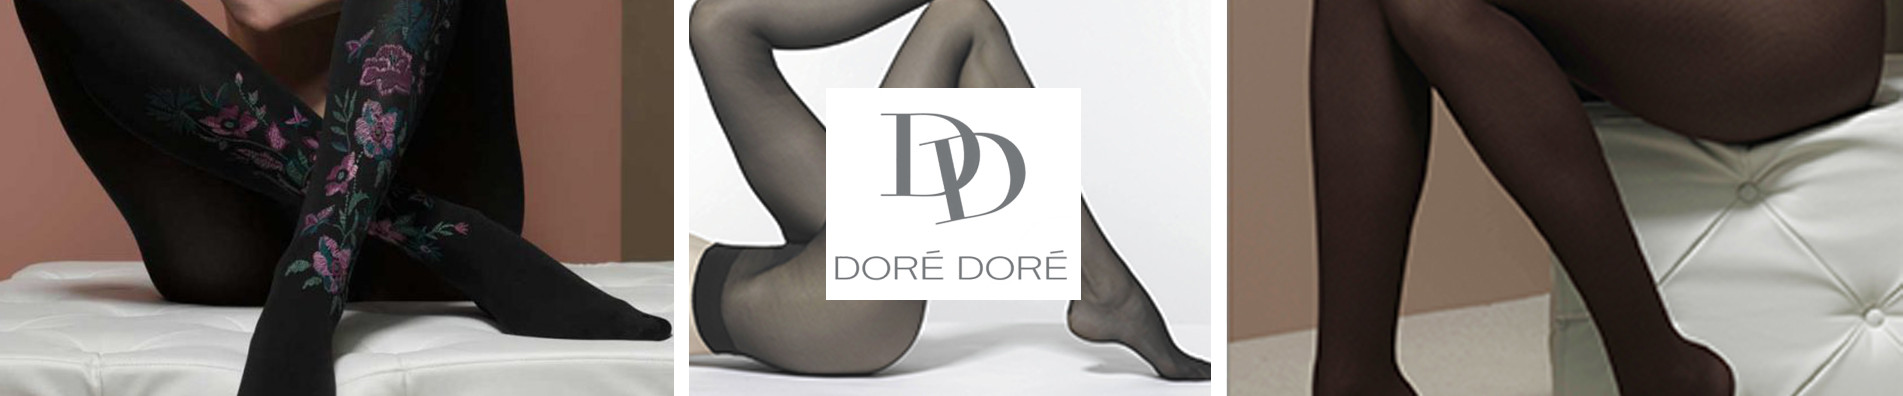 Collants Dore Dore, Collants Femme Dore Dore, achat en ligne - M.D.C.